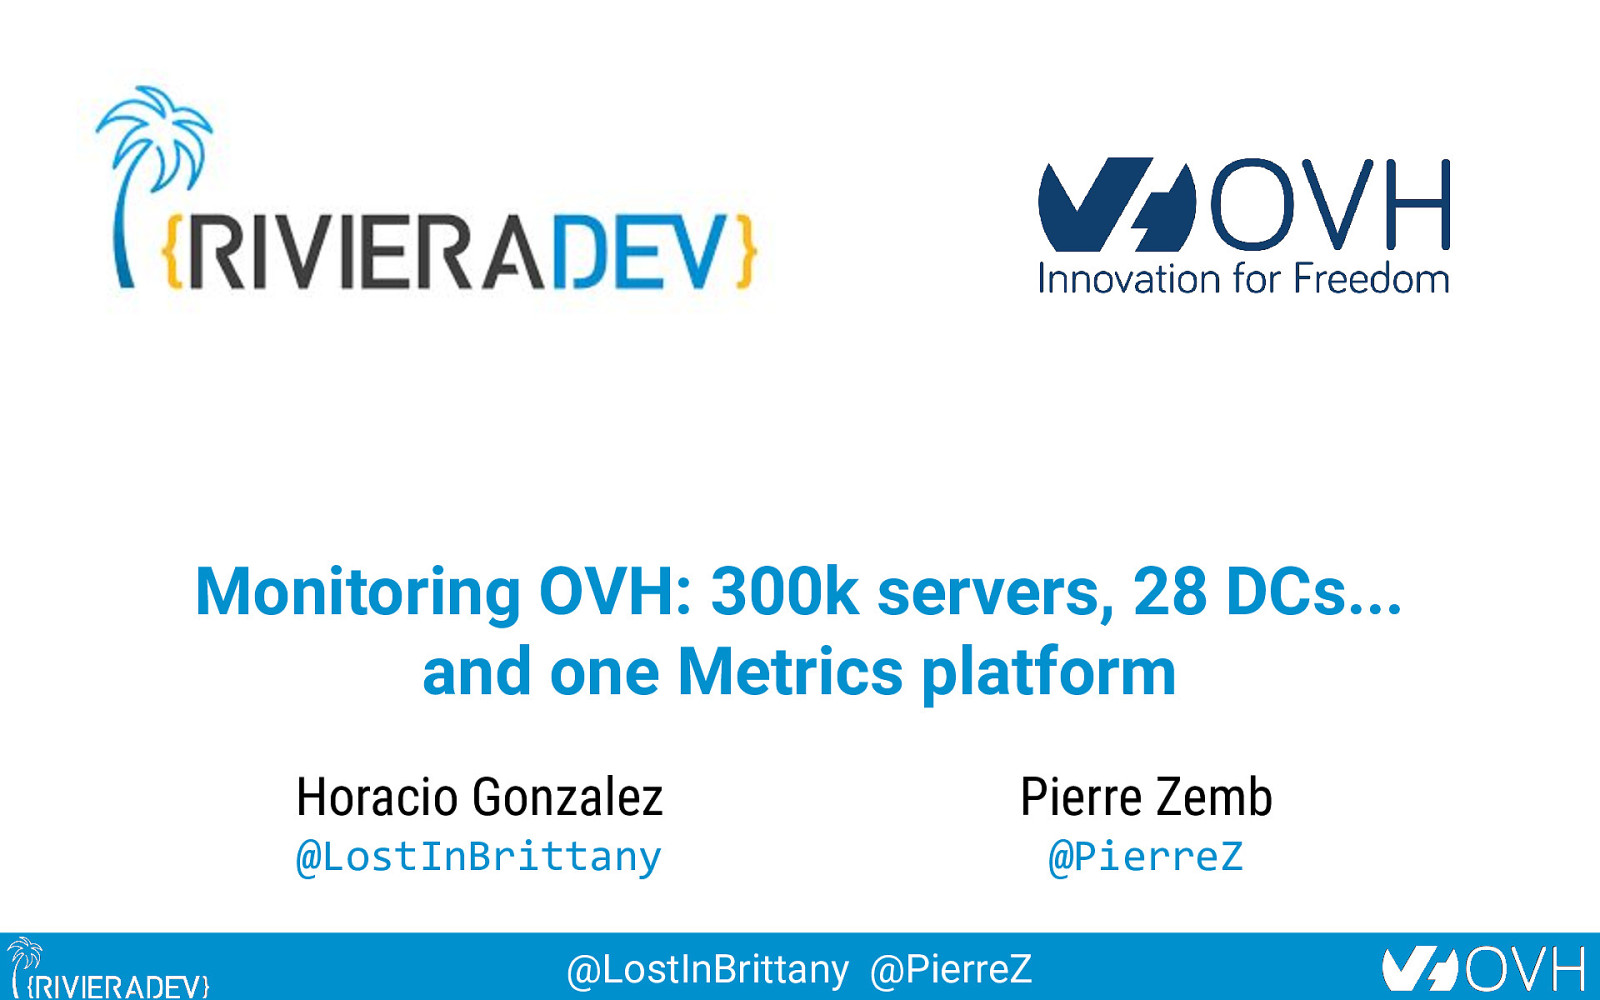 Monitoring OVH: 300k servers, 27 DCs and one Metrics platform